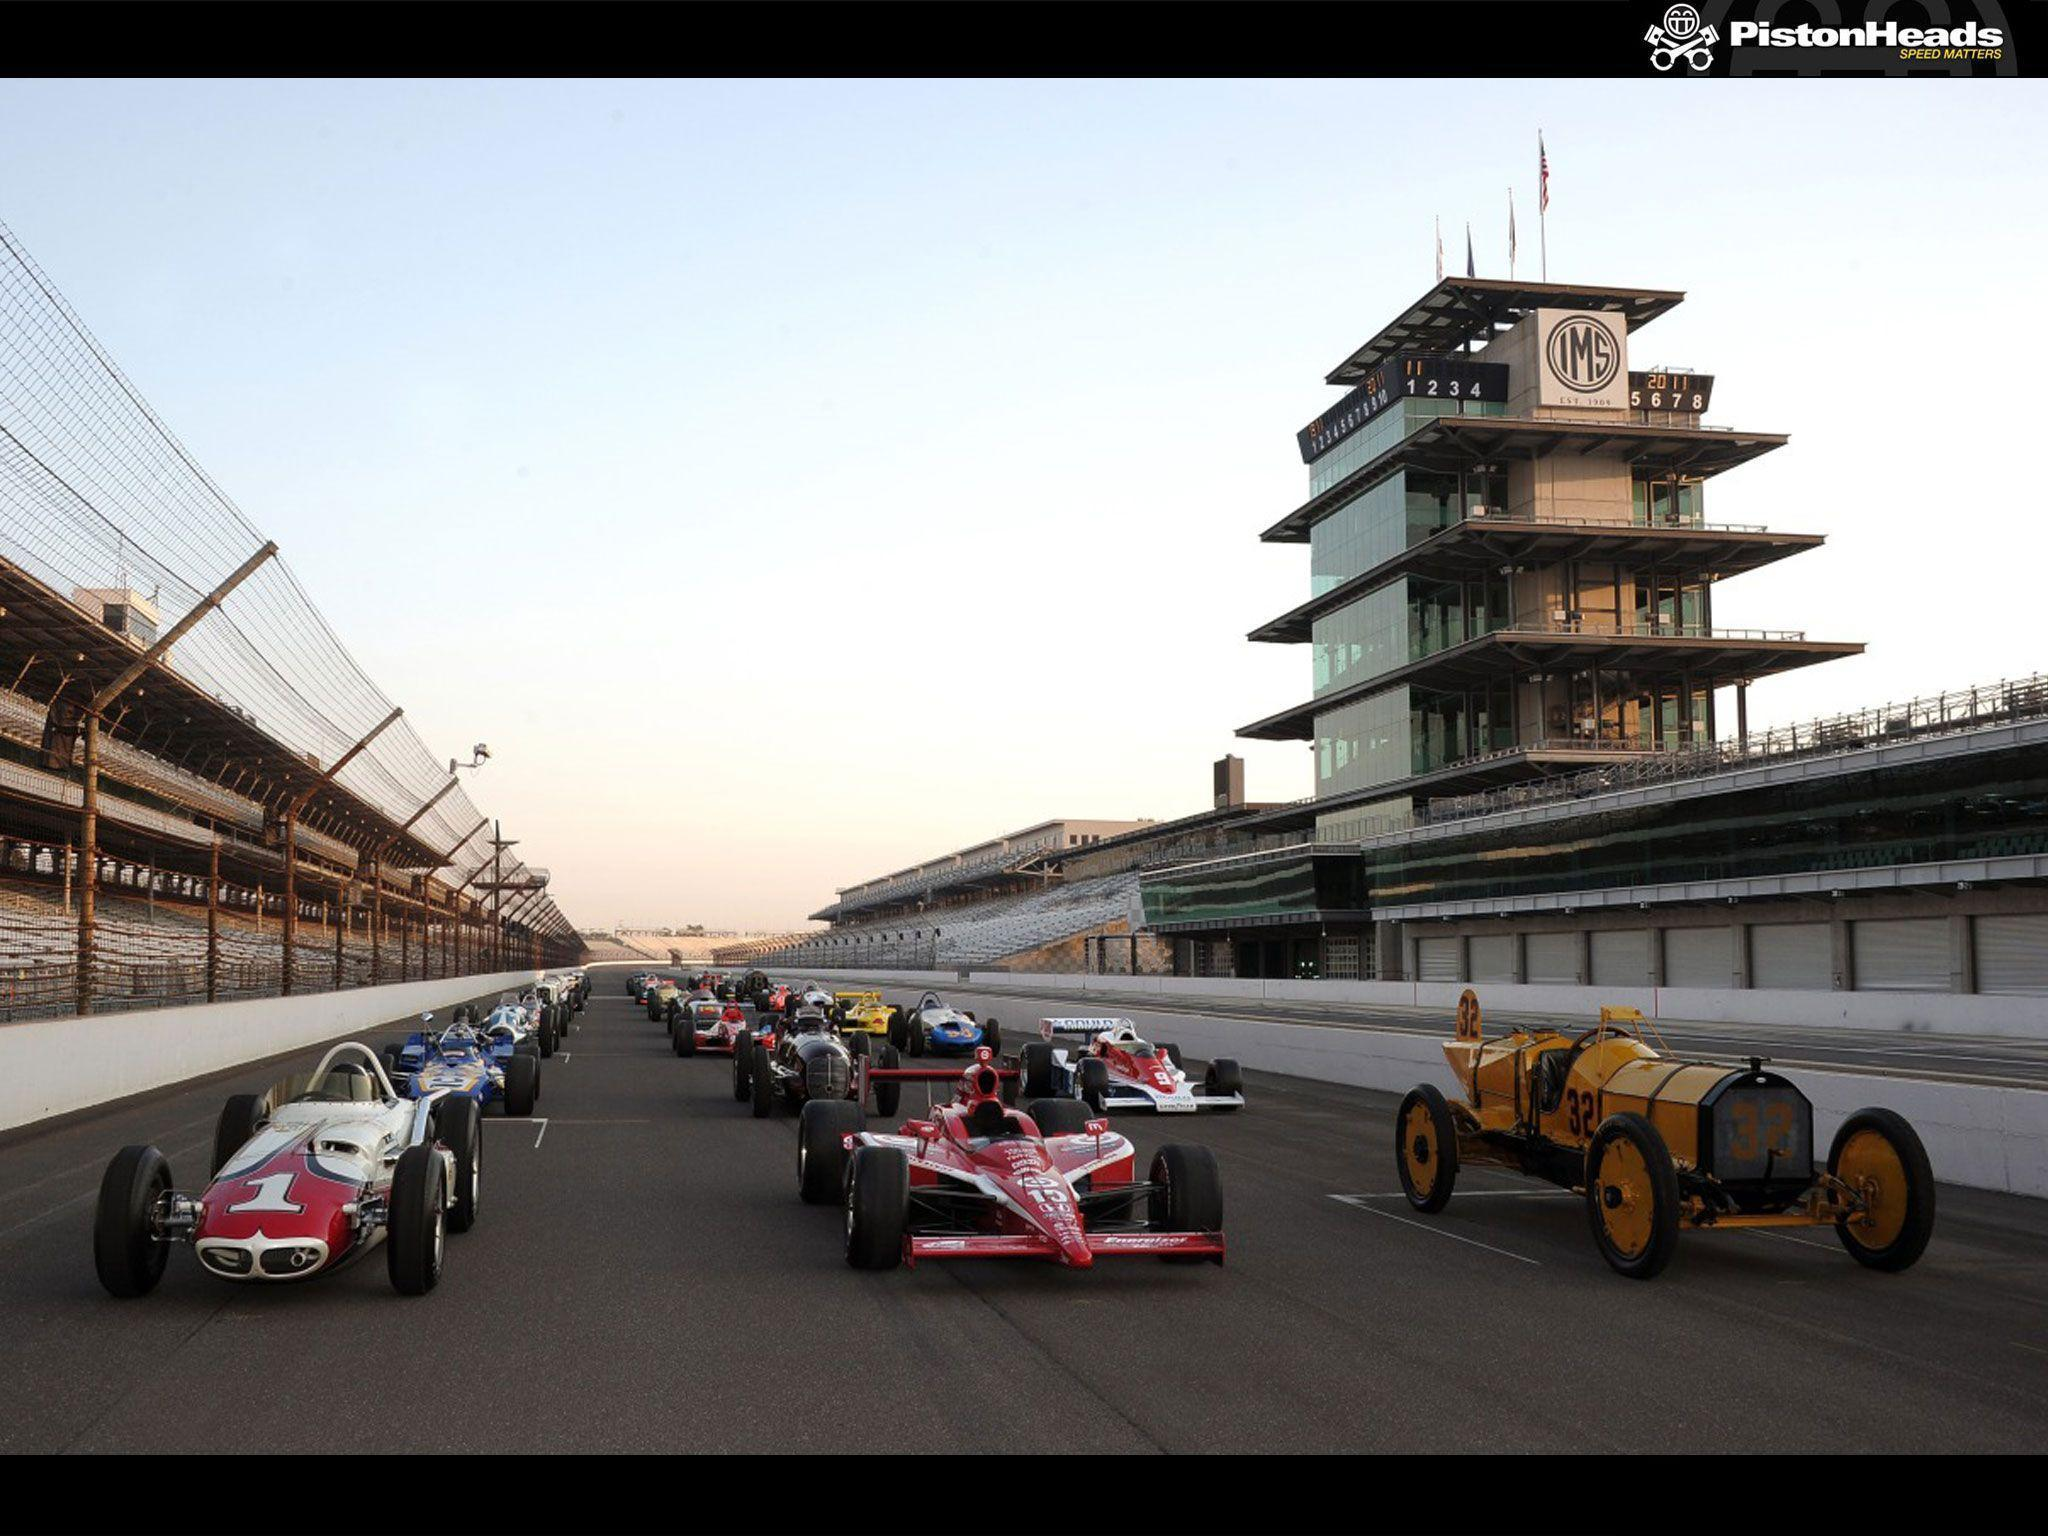 Best 51+ Indy 500 Wallpaper on HipWallpaper | Windy Wallpaper, Cold ...